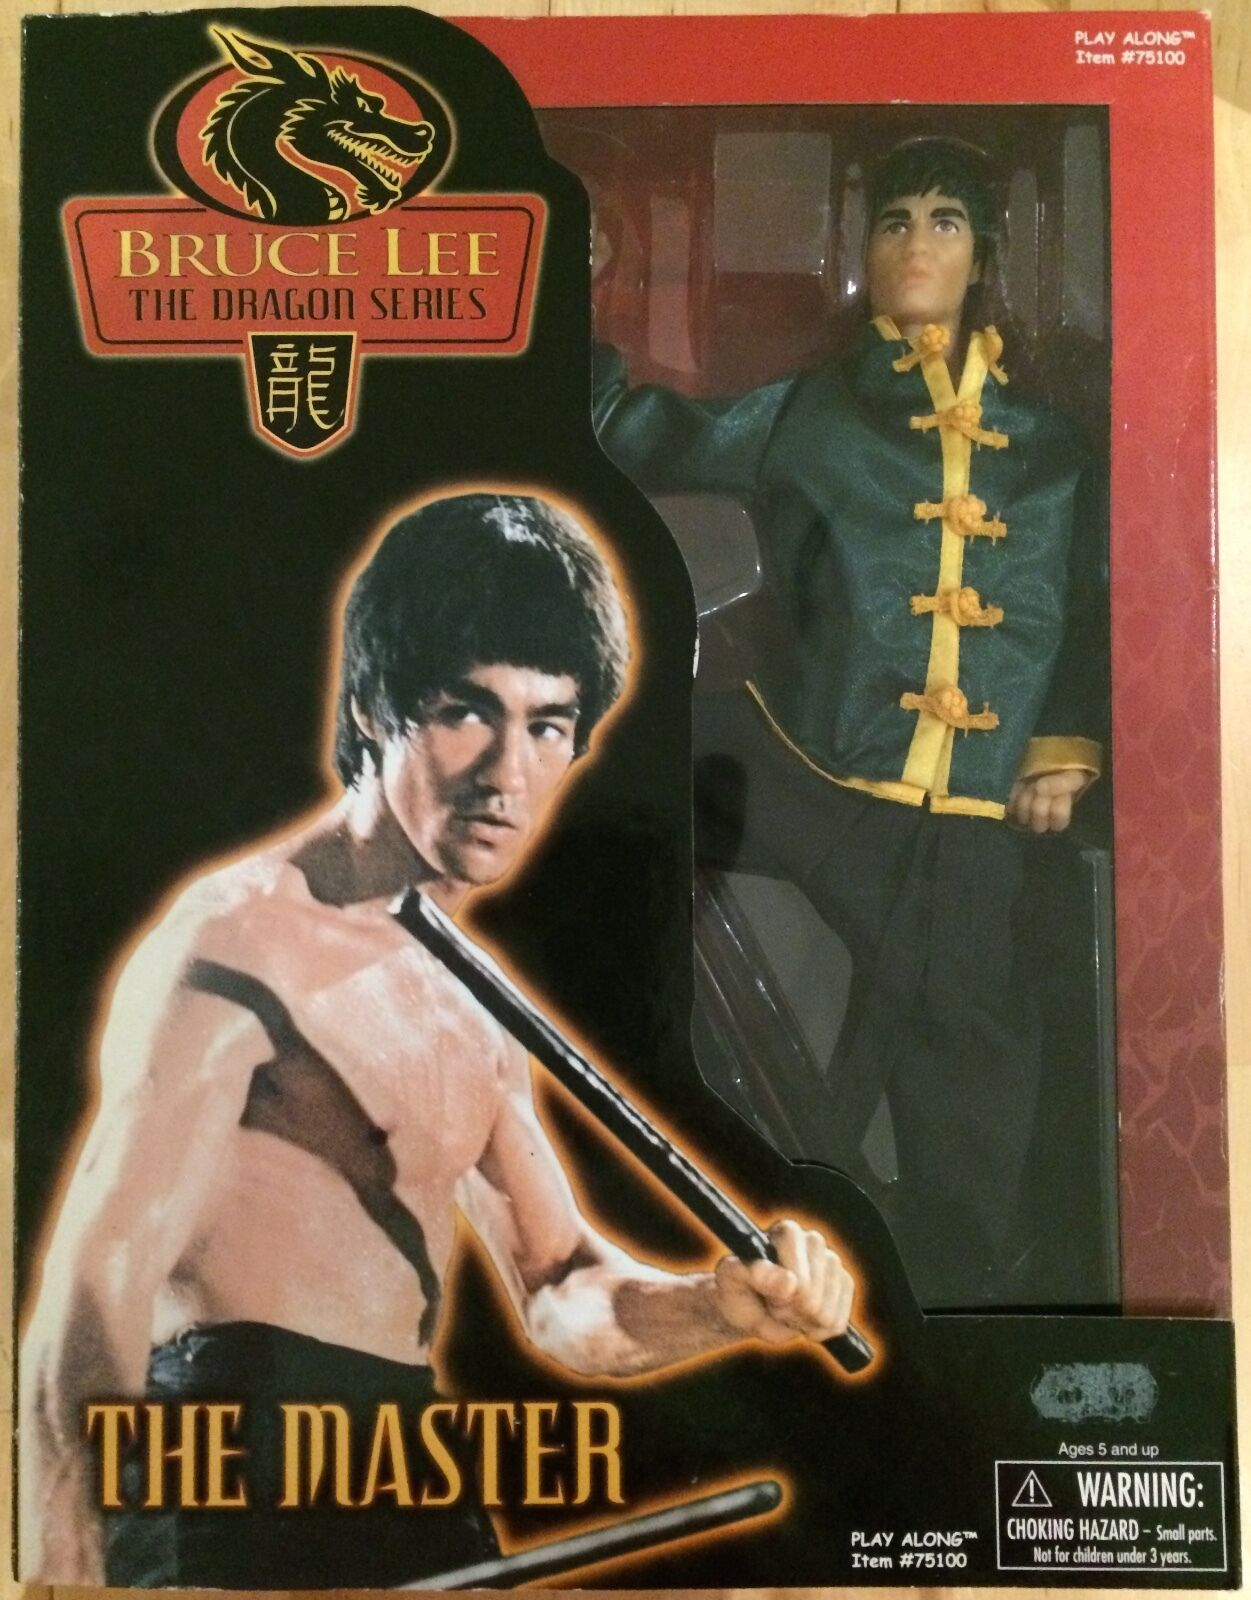 Bruce Lee The Dragon Series - The Master 11  posable figure